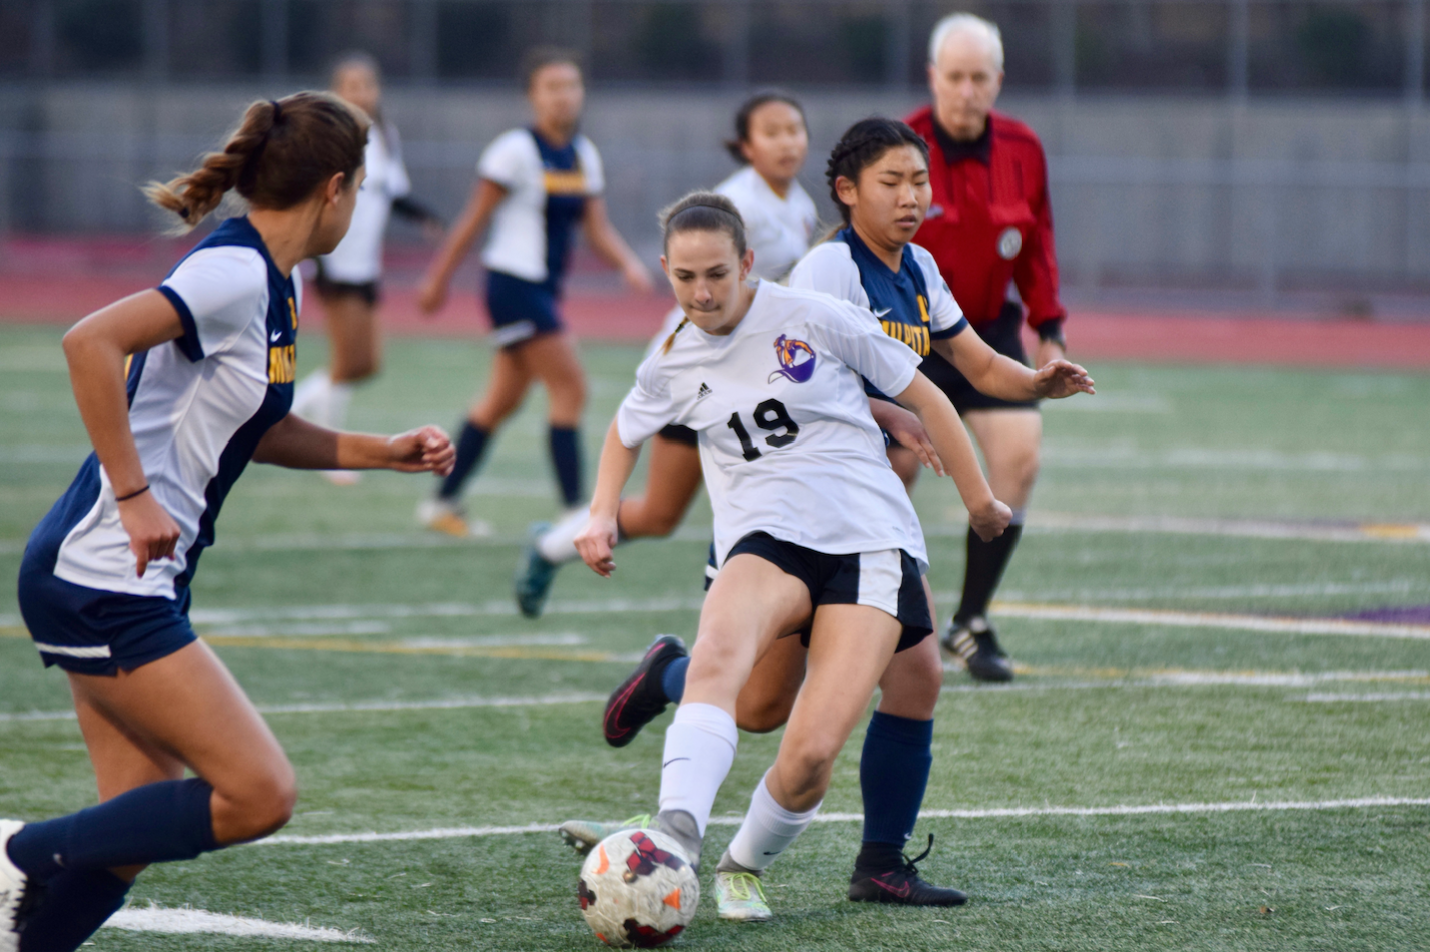 Freshman Claire Ettinger passes the ball to a teammate during a game against Milpitas HS.